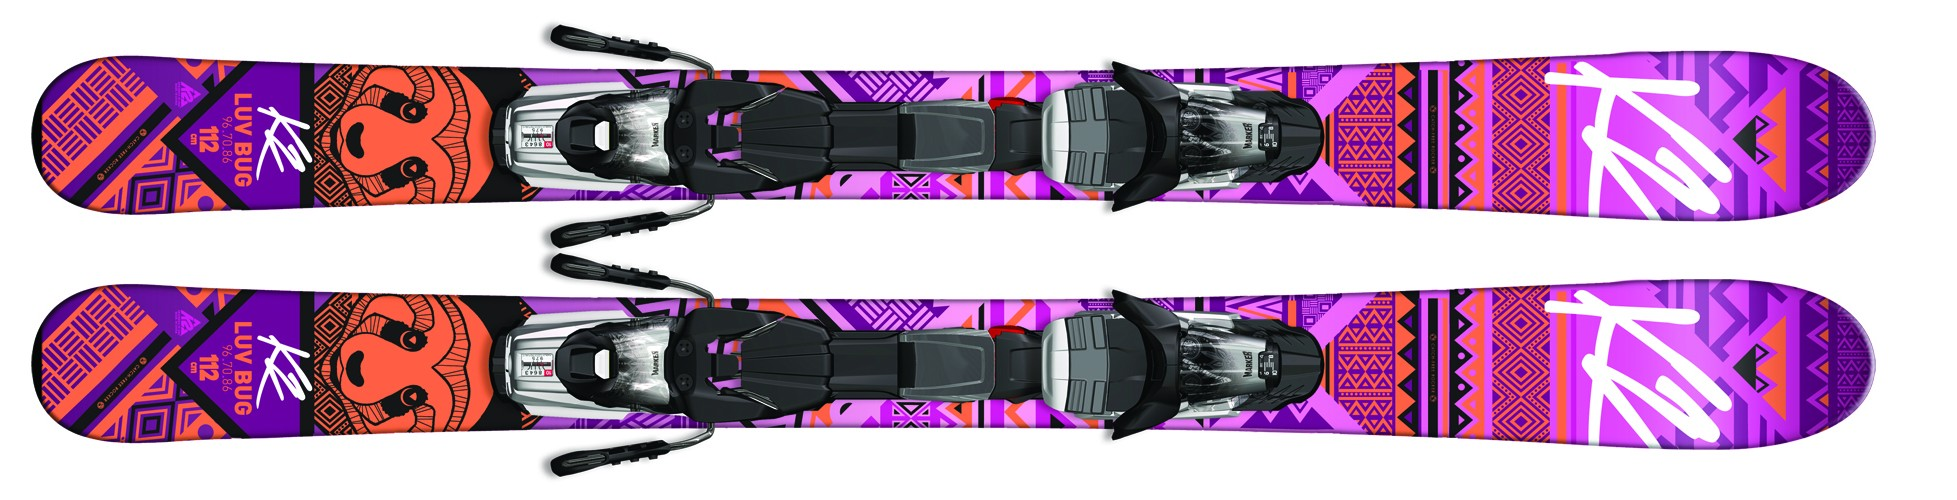 k2skis_1617_luvbug_top_bin-copy